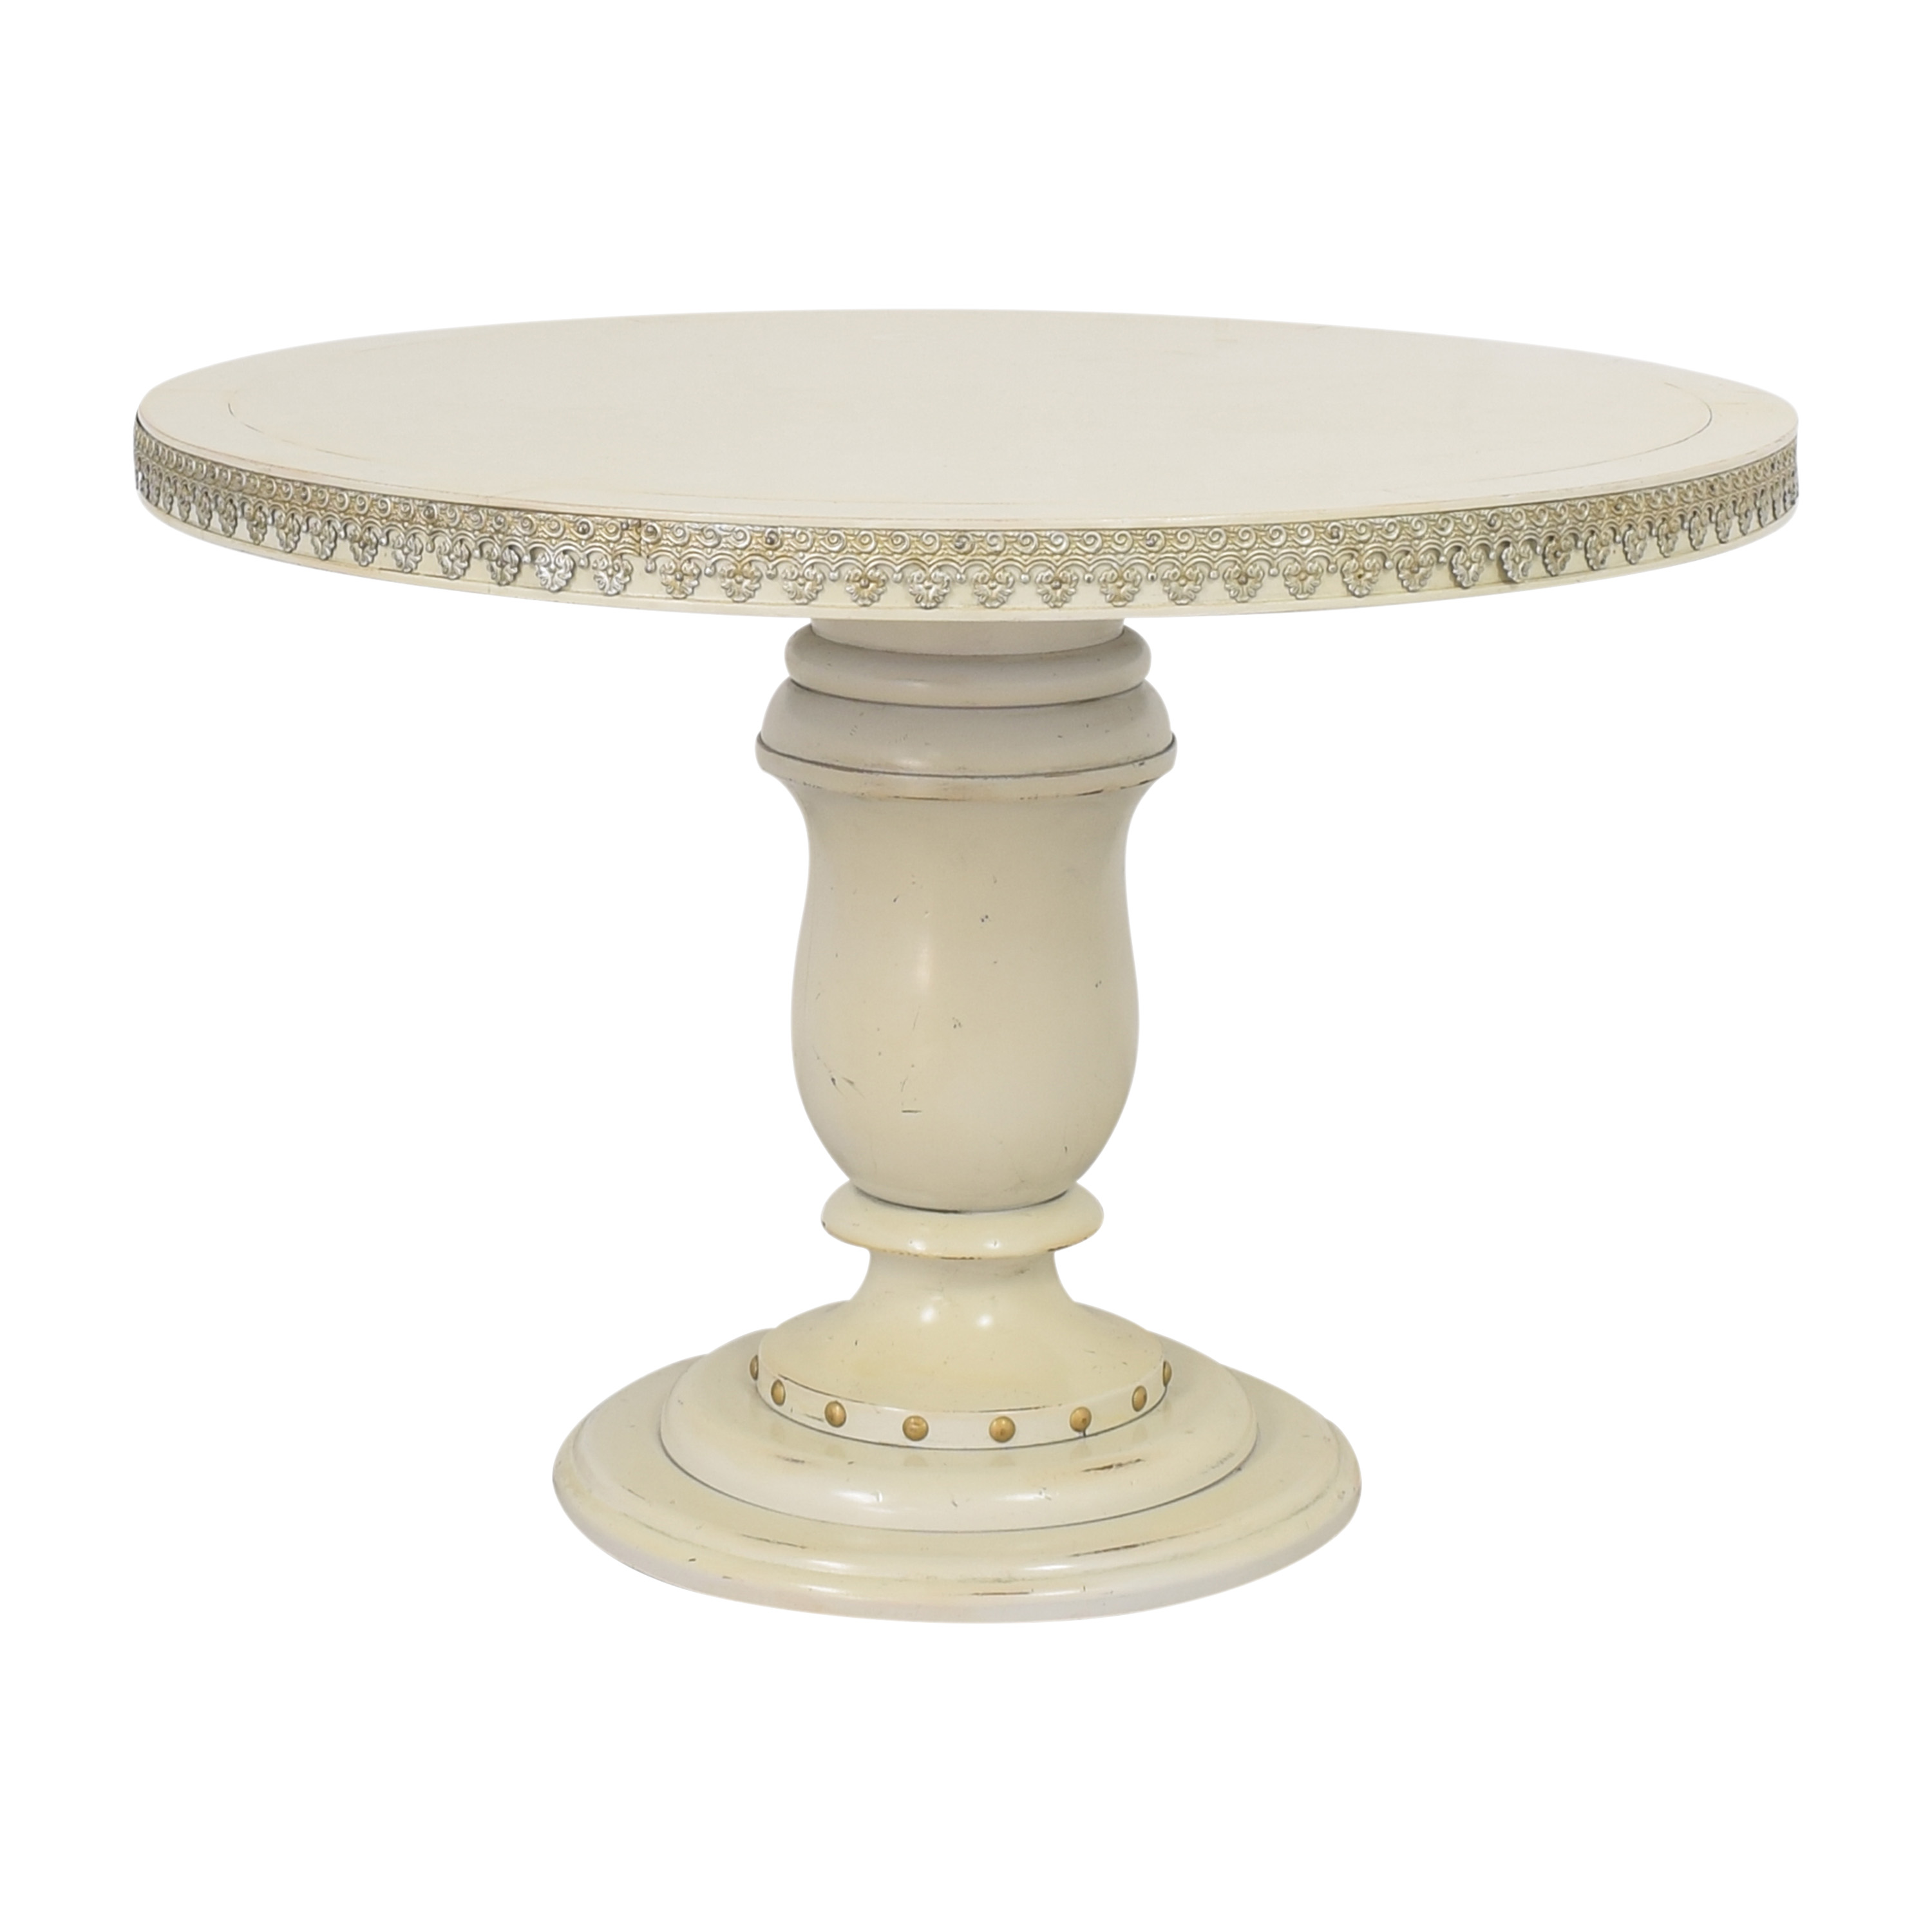 Côté France Côté France Accented Round Dining Table nyc